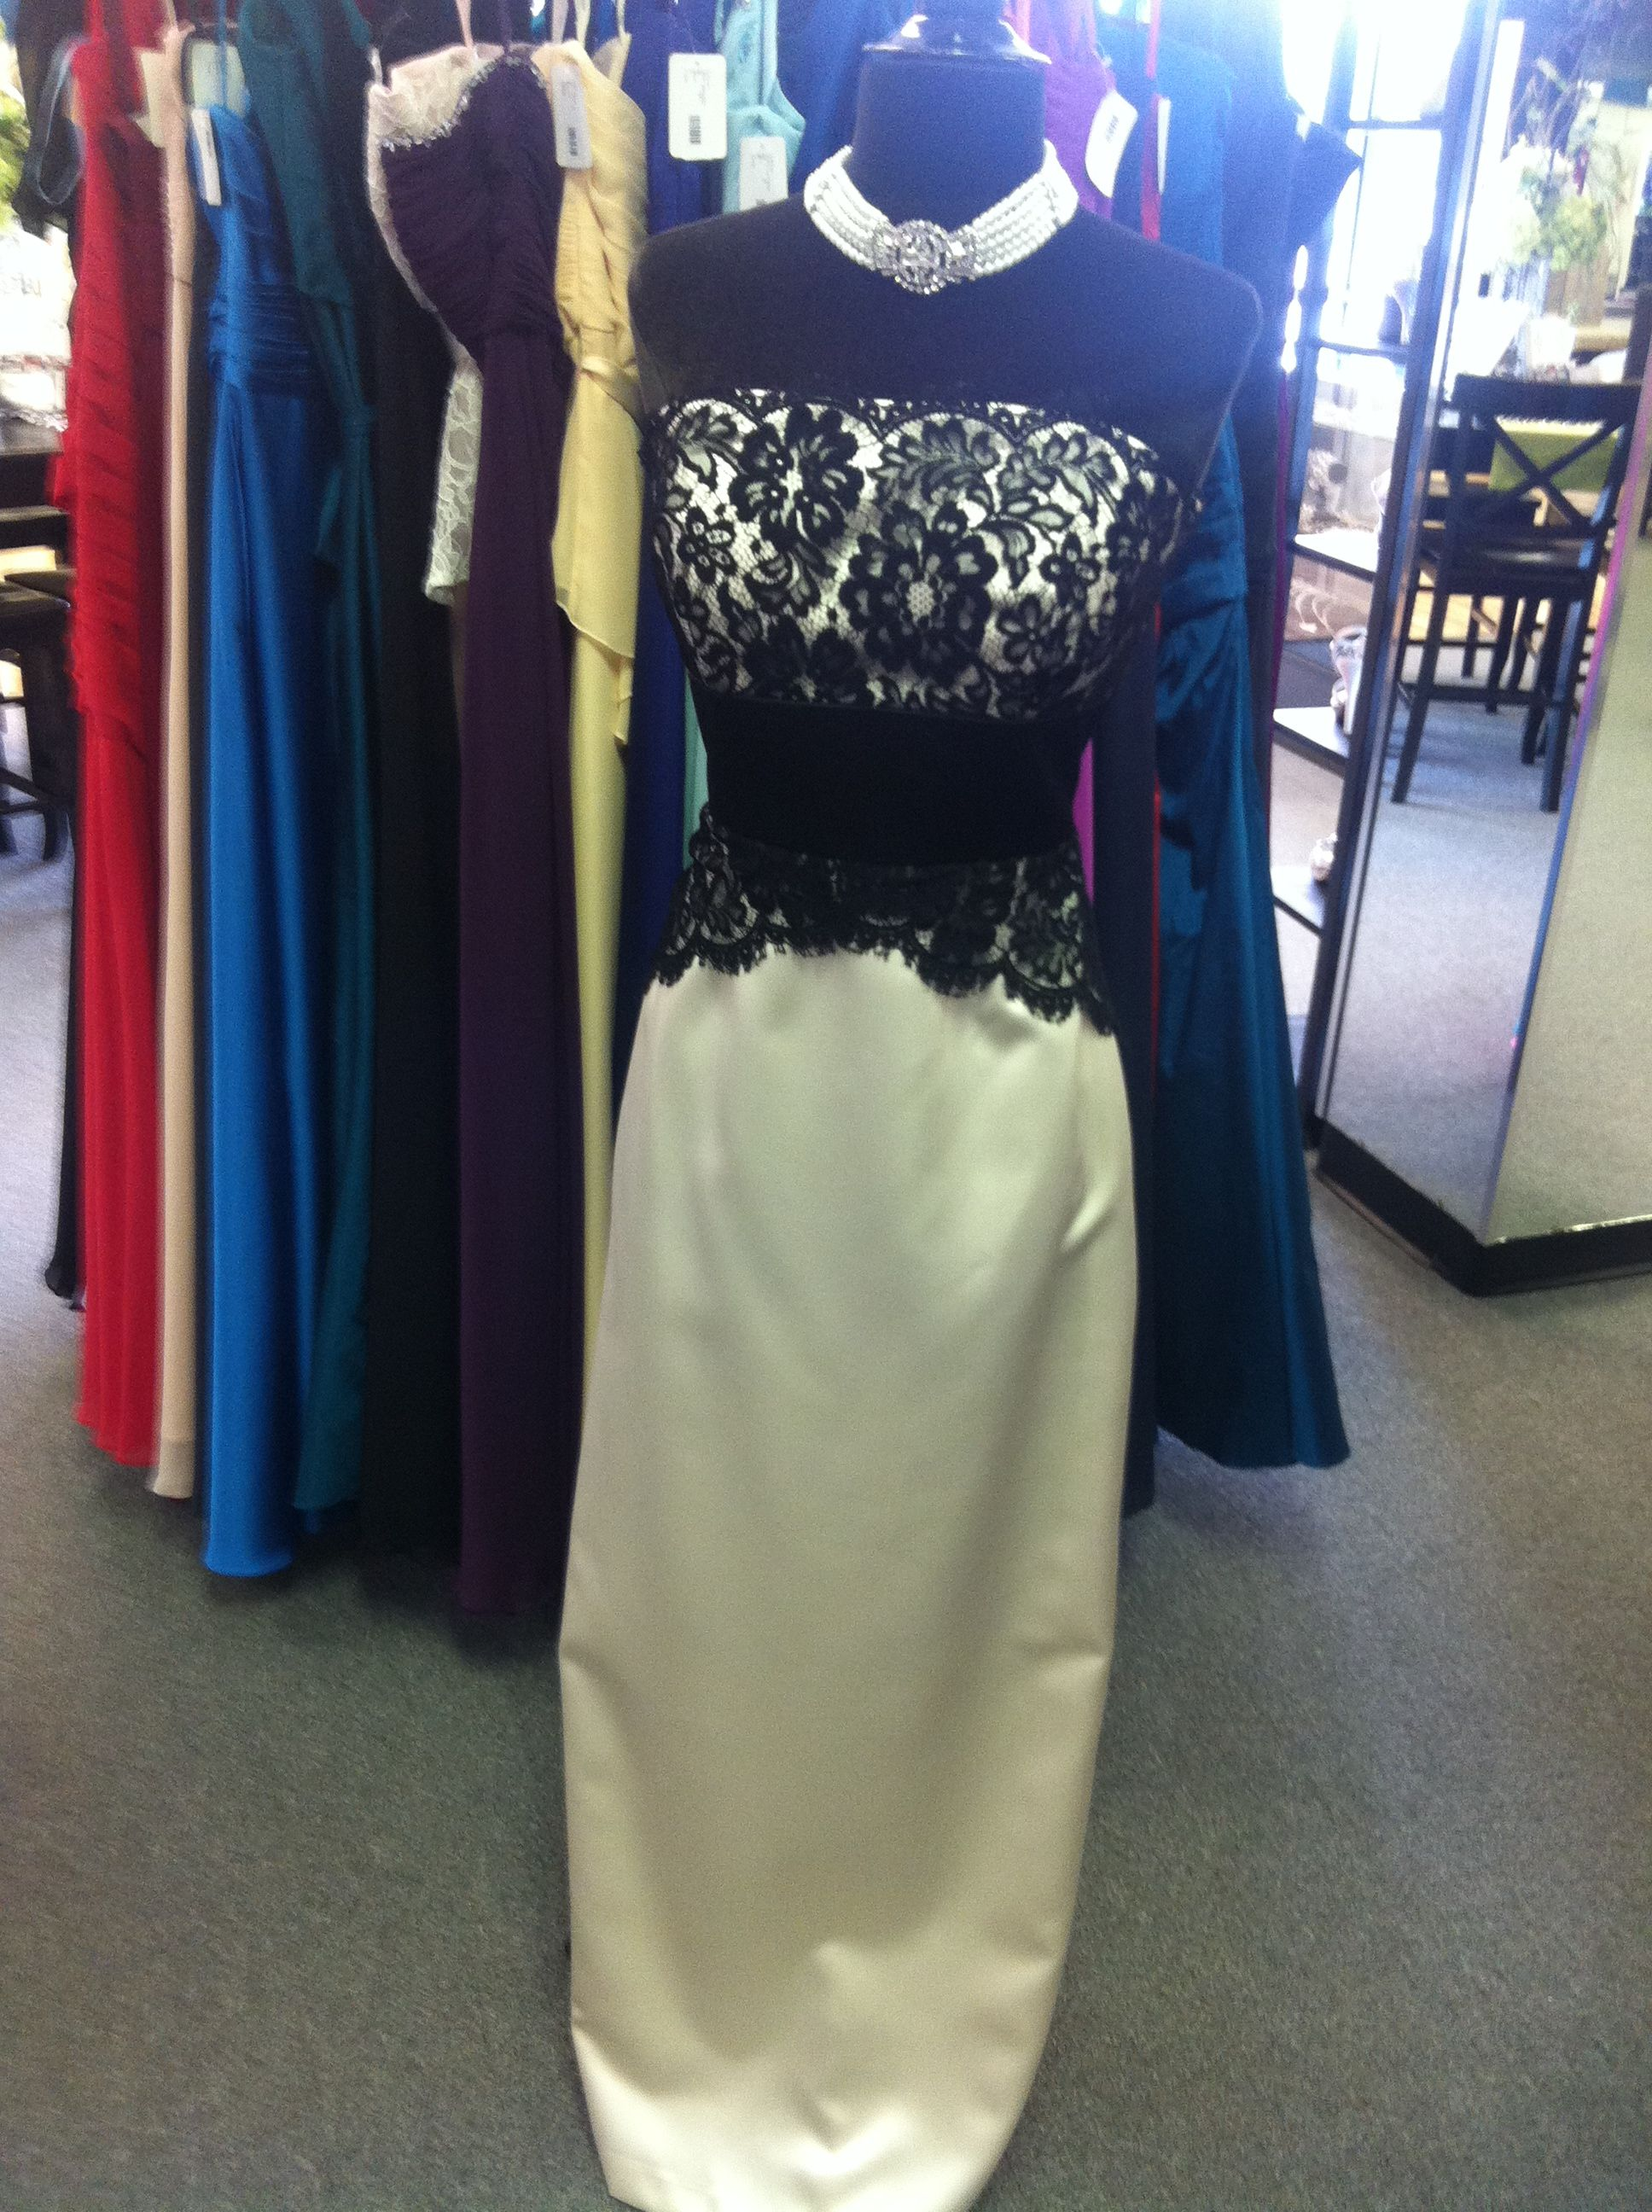 This gorgeous gown from designer #Dessy would be perfect for any #formal event!